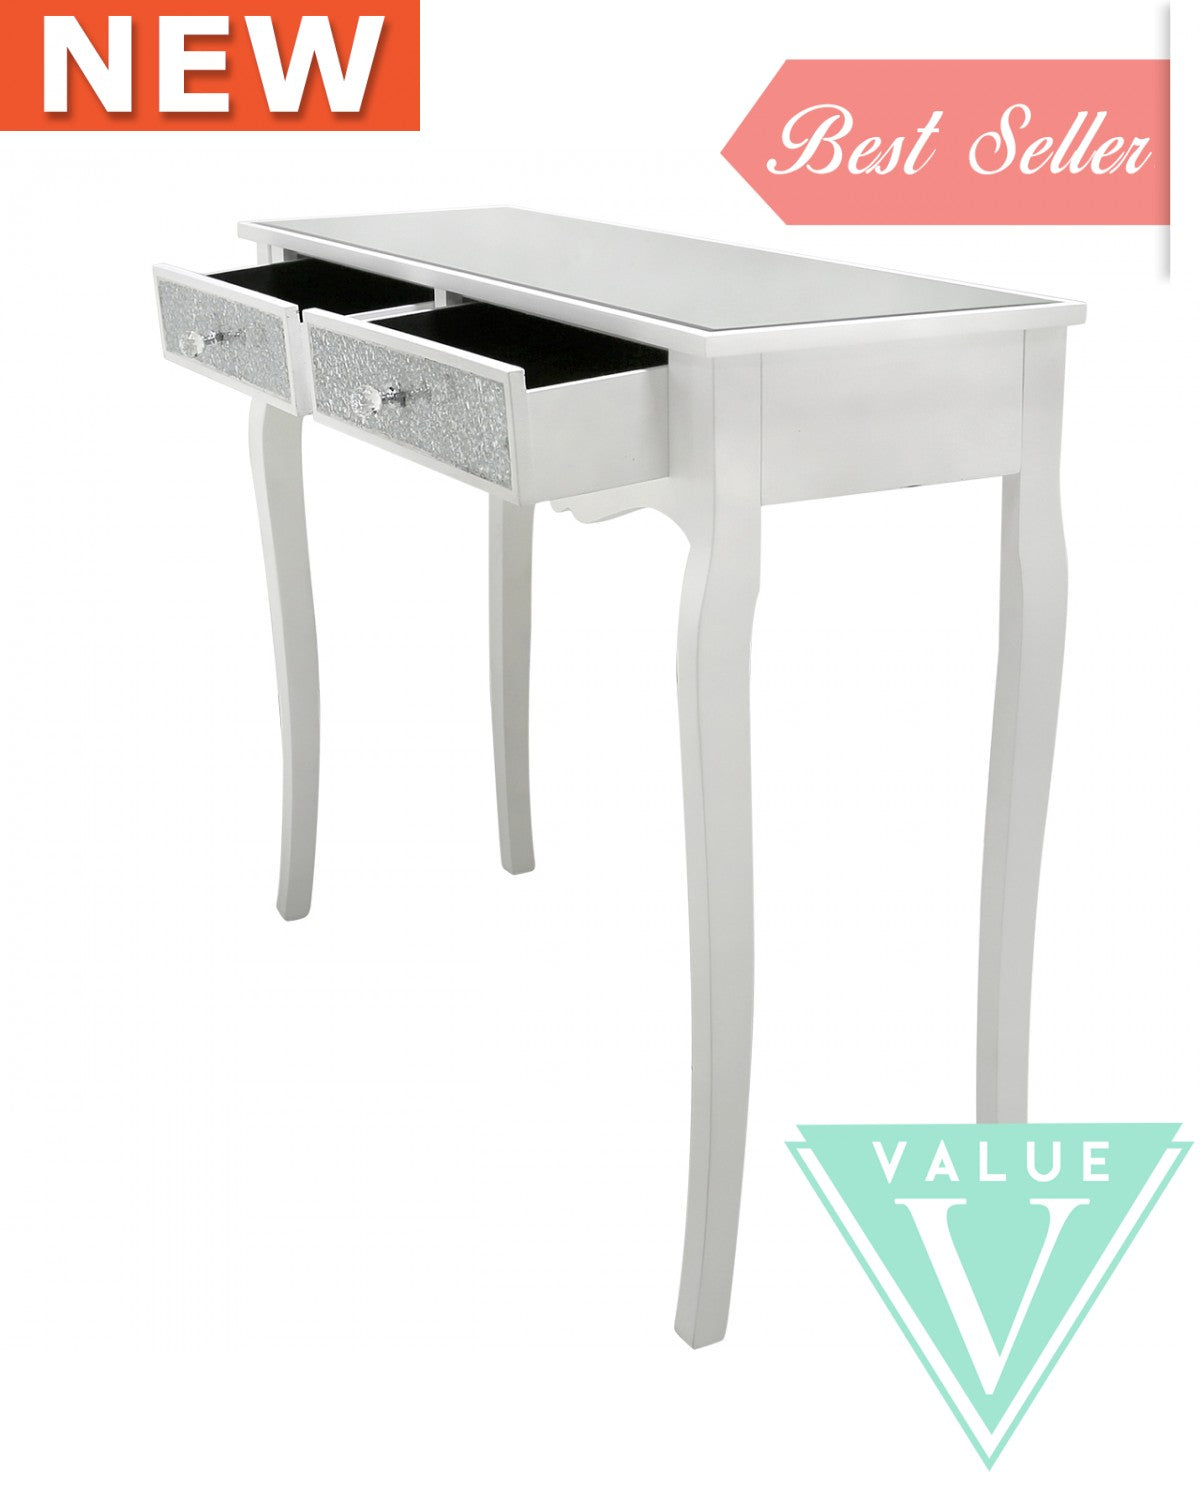 Value Oakley Sparkle Console Table